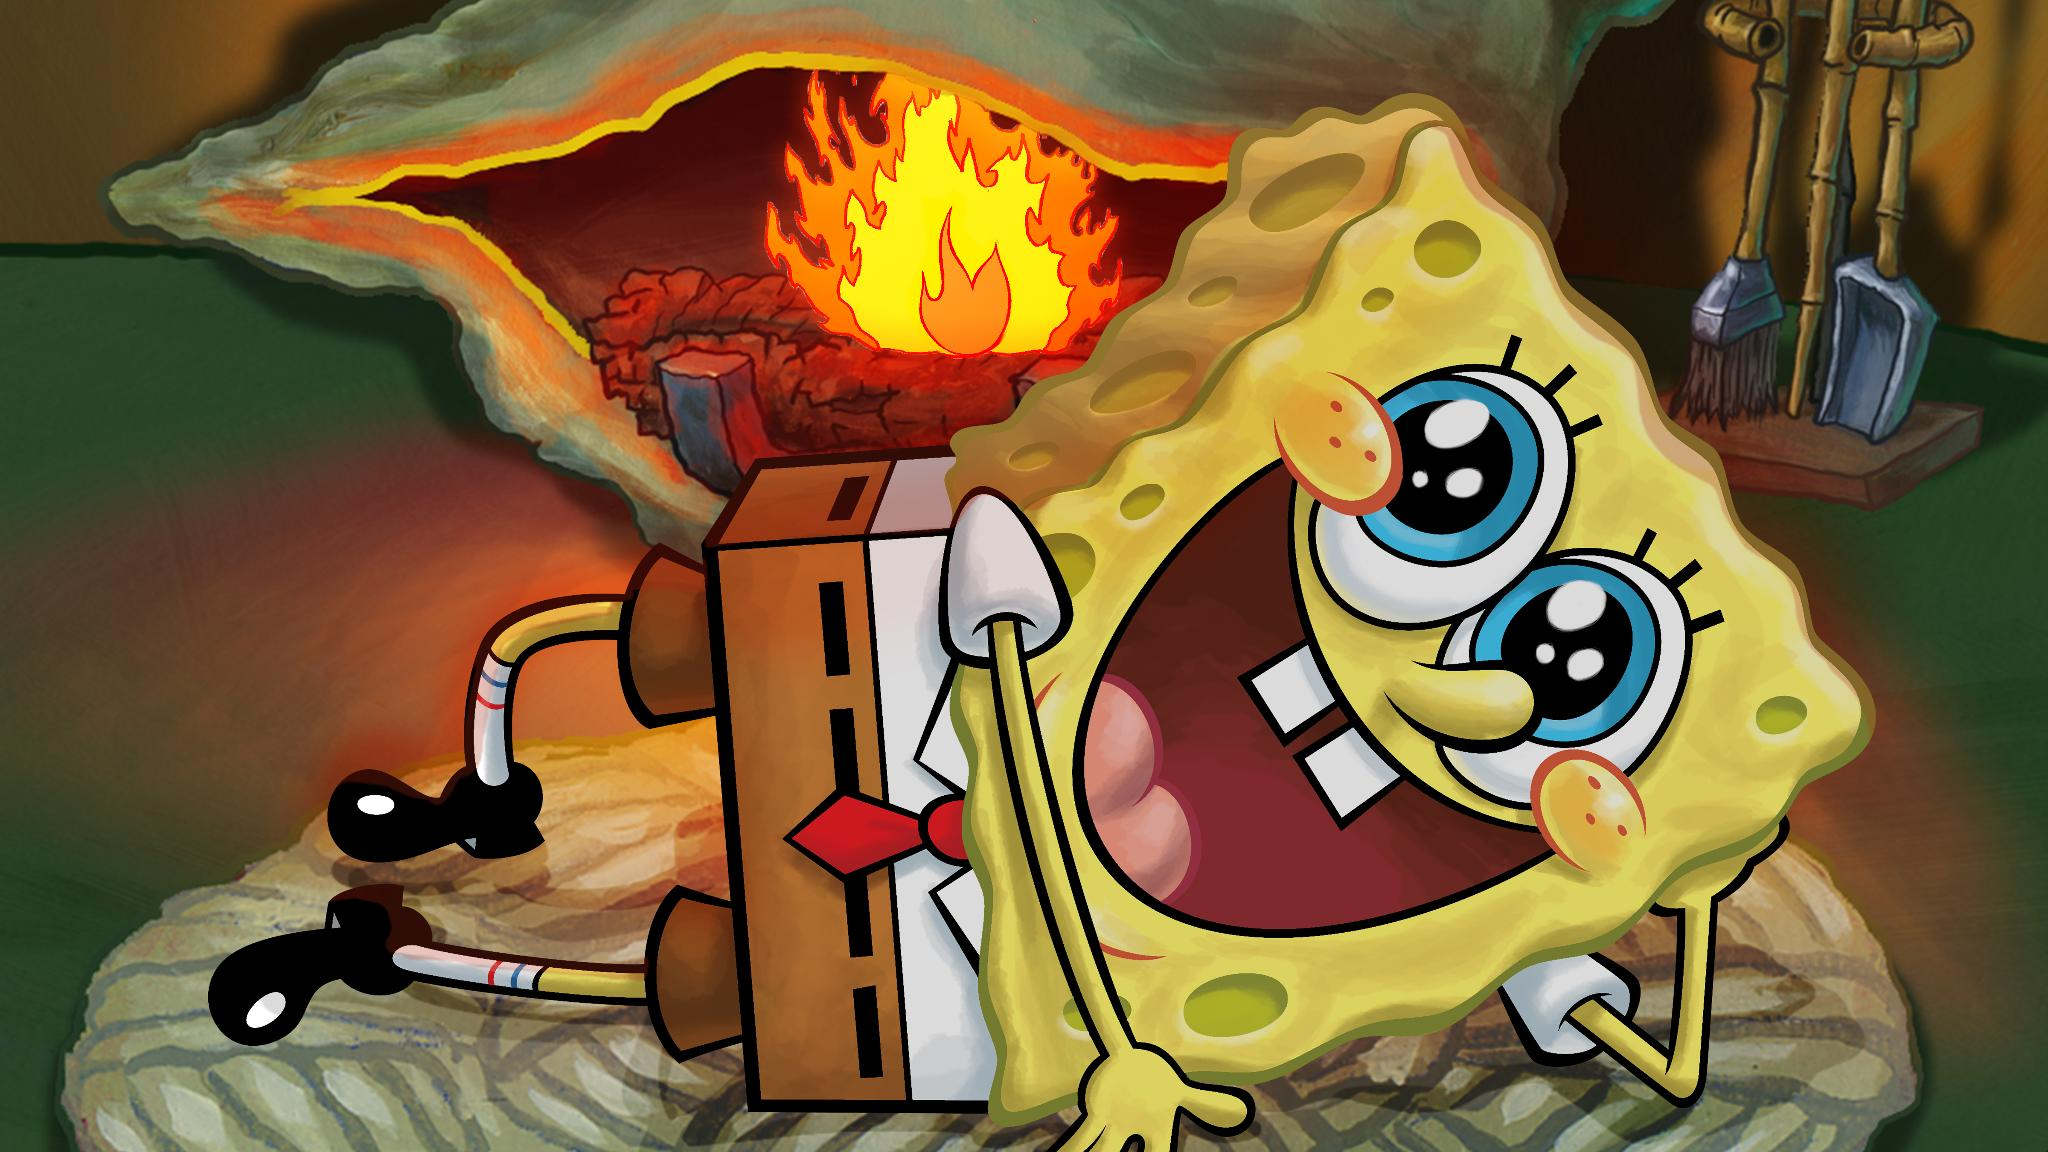 Spongebob Hd Wallpaper Fire